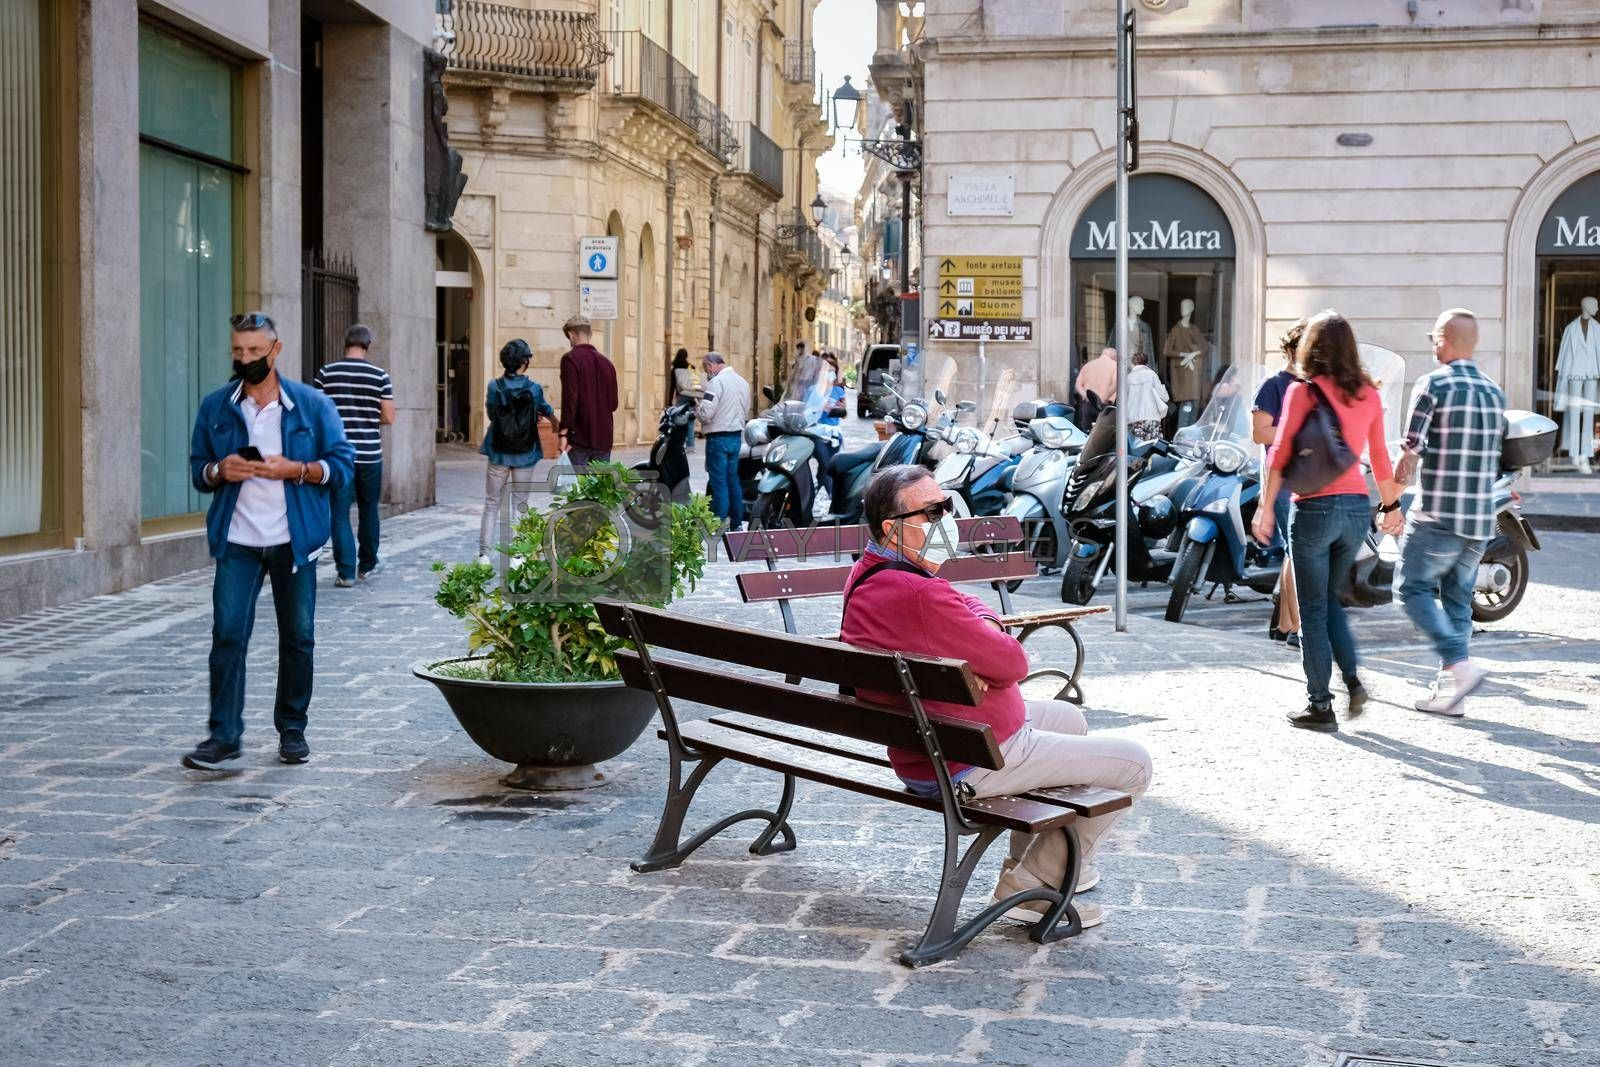 Royalty free image of Ortigia in Syracuse in the Morning. Travel Photography from Syracuse, Italy on the island of Sicily. Cathedral Plaza and market with people whear face protection during the 2020 pandemic by fokkebok